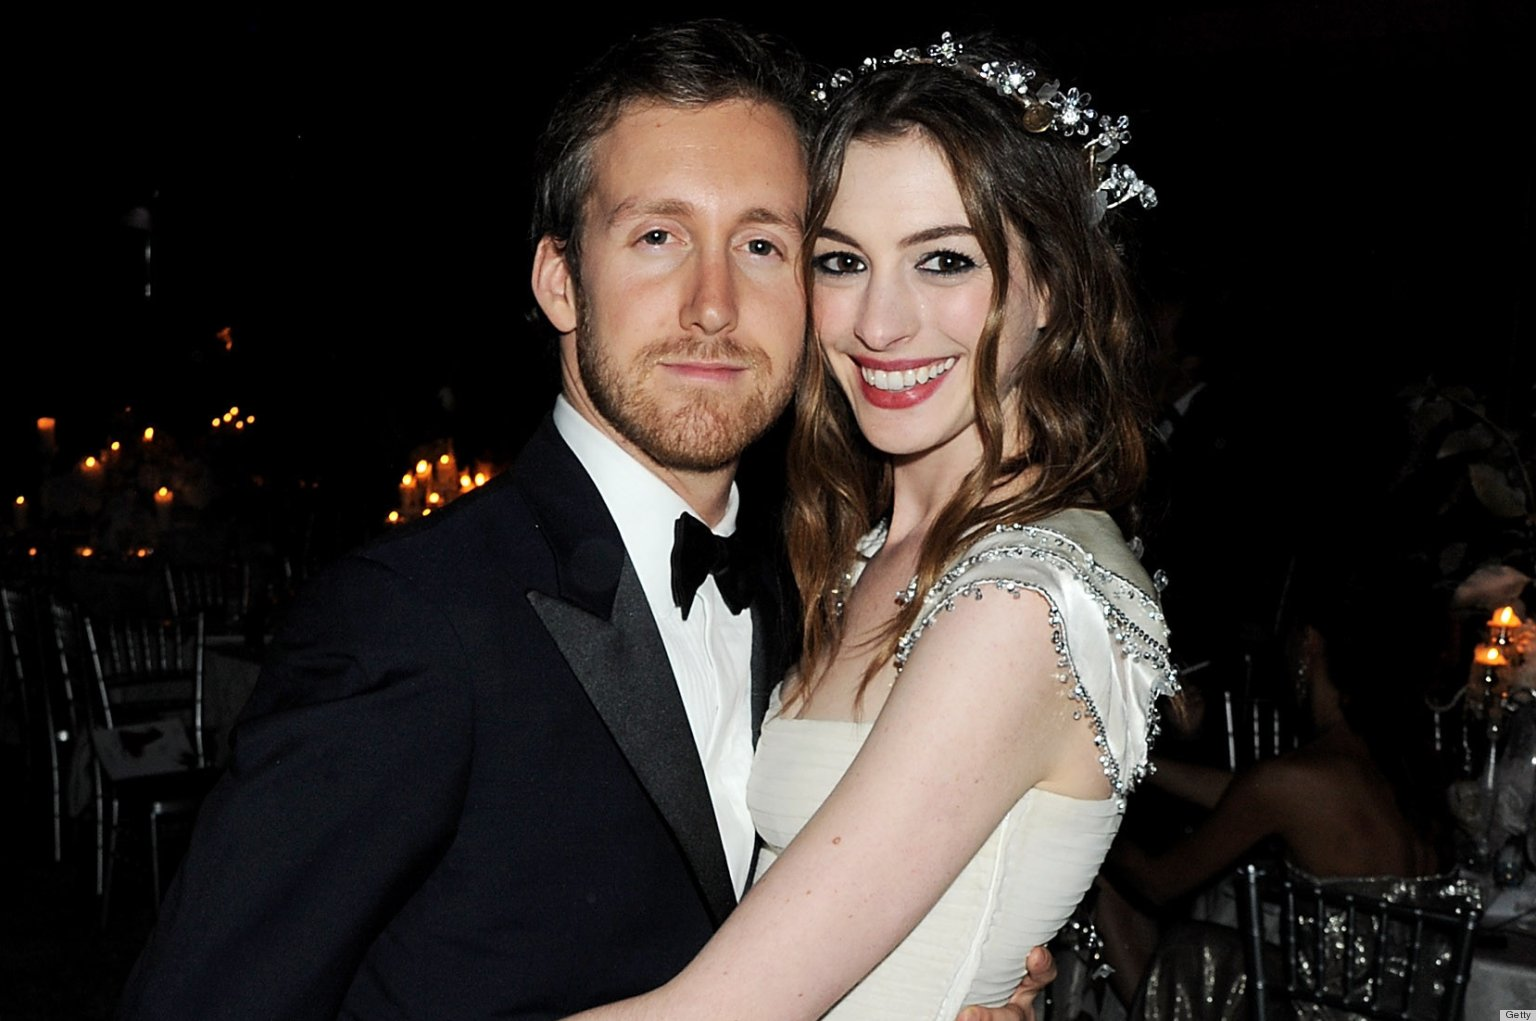 Anne Hathaway Wedding Dress: The Actress Weds In Gauzy